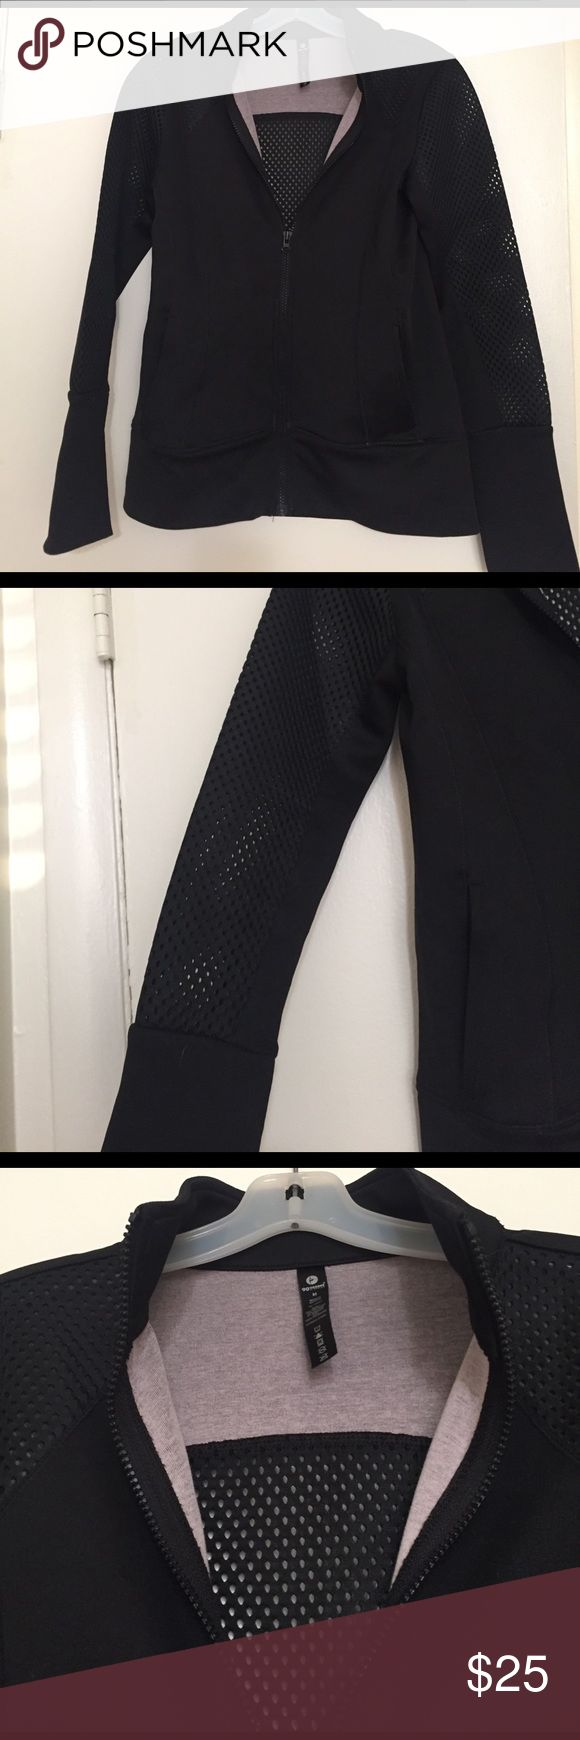 Athletic Mesh Running Jacket Zip-up lightweight jacket with scuba fabric. Mesh is on the sleeves and back of jacket. Tried it on and took the tags off but have never worn it. Pockets on the front 90 Degree by Reflex Jackets & Coats